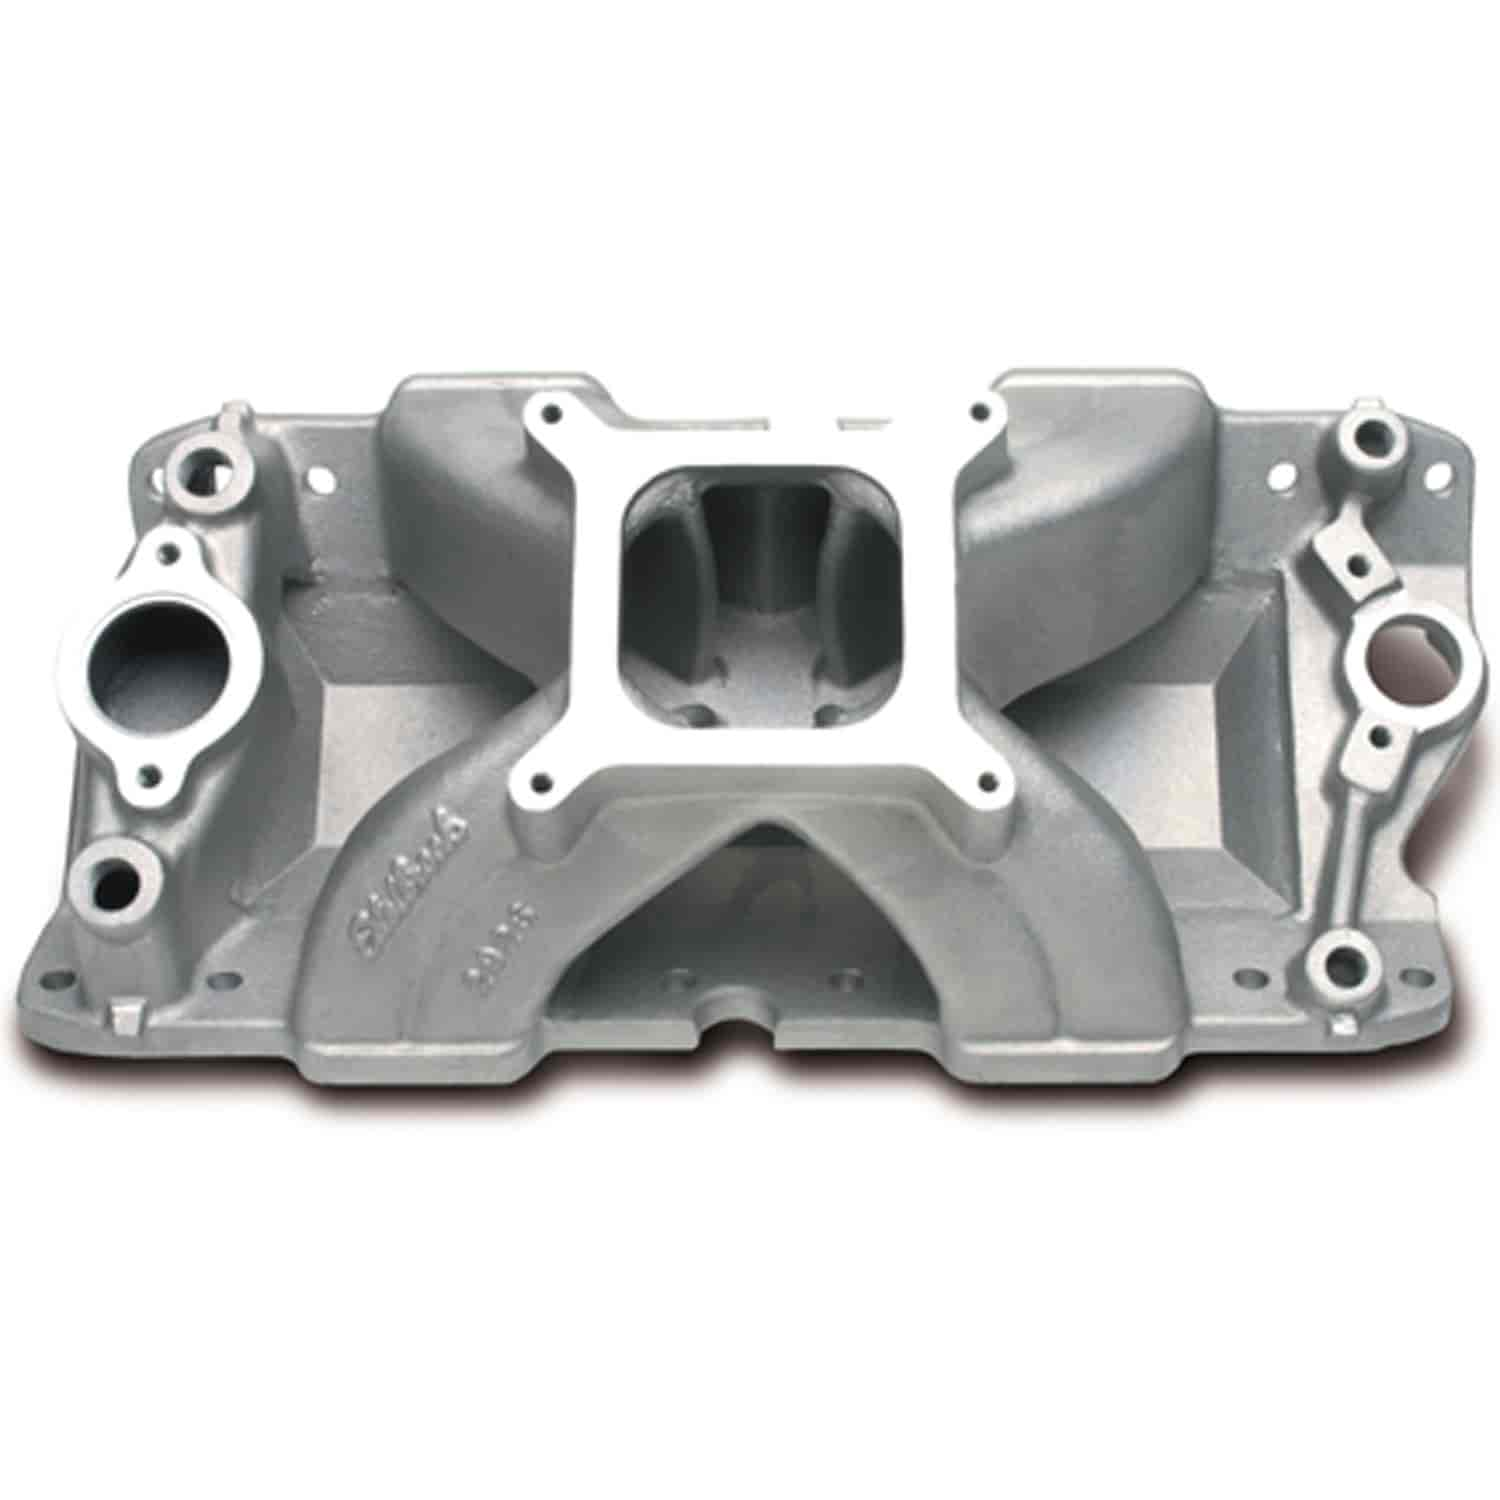 Edelbrock 2949 - Edelbrock Victor Series Intake Manifolds for Small Block Chevy